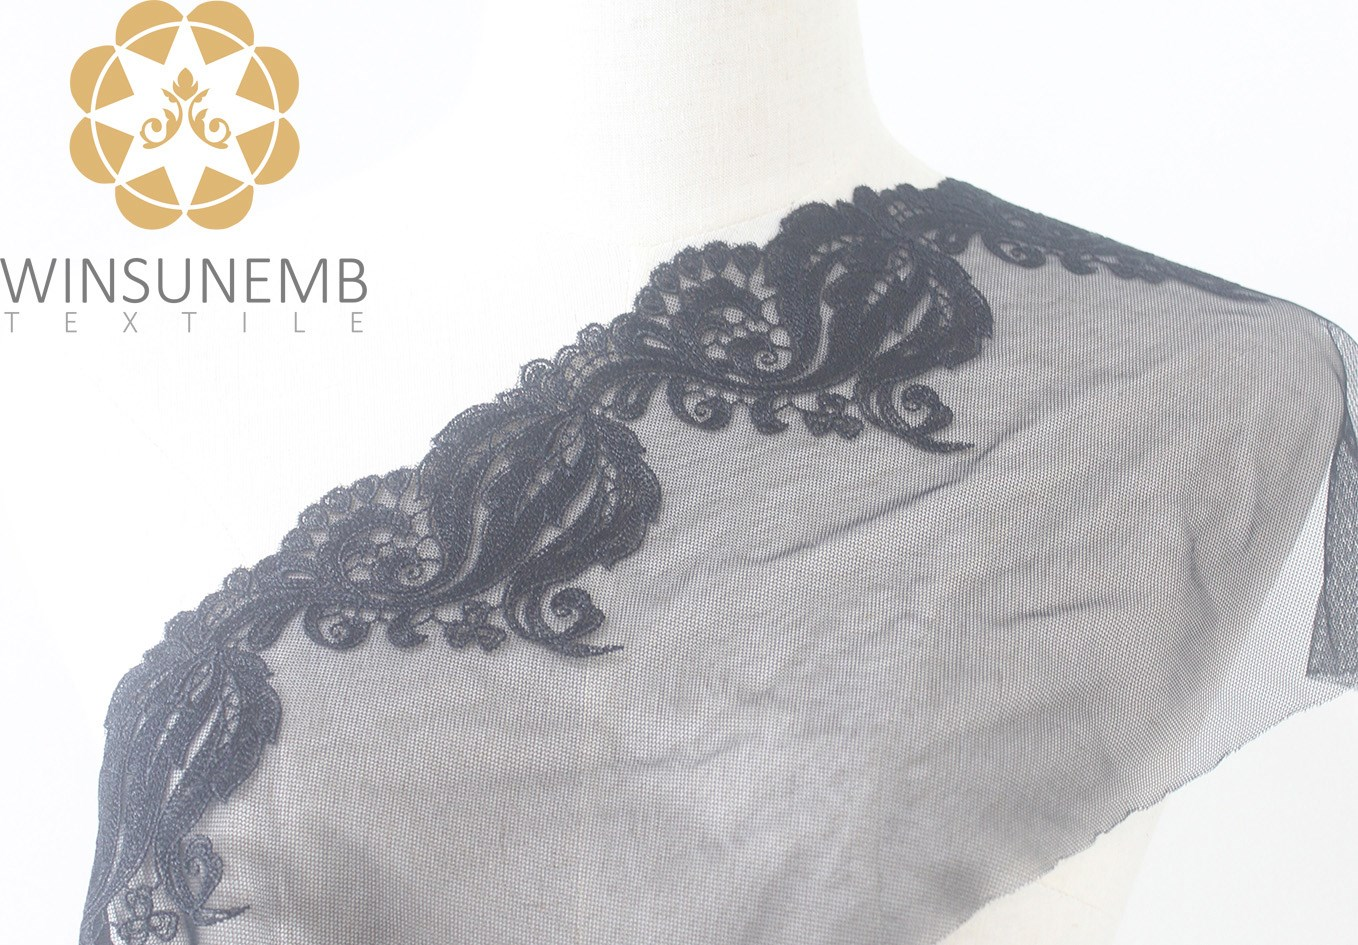 Winsunemb -Lace Fabric | Surrounded By Love Mermaid Single-wave Embroidery Lace Trimming 21 Cm